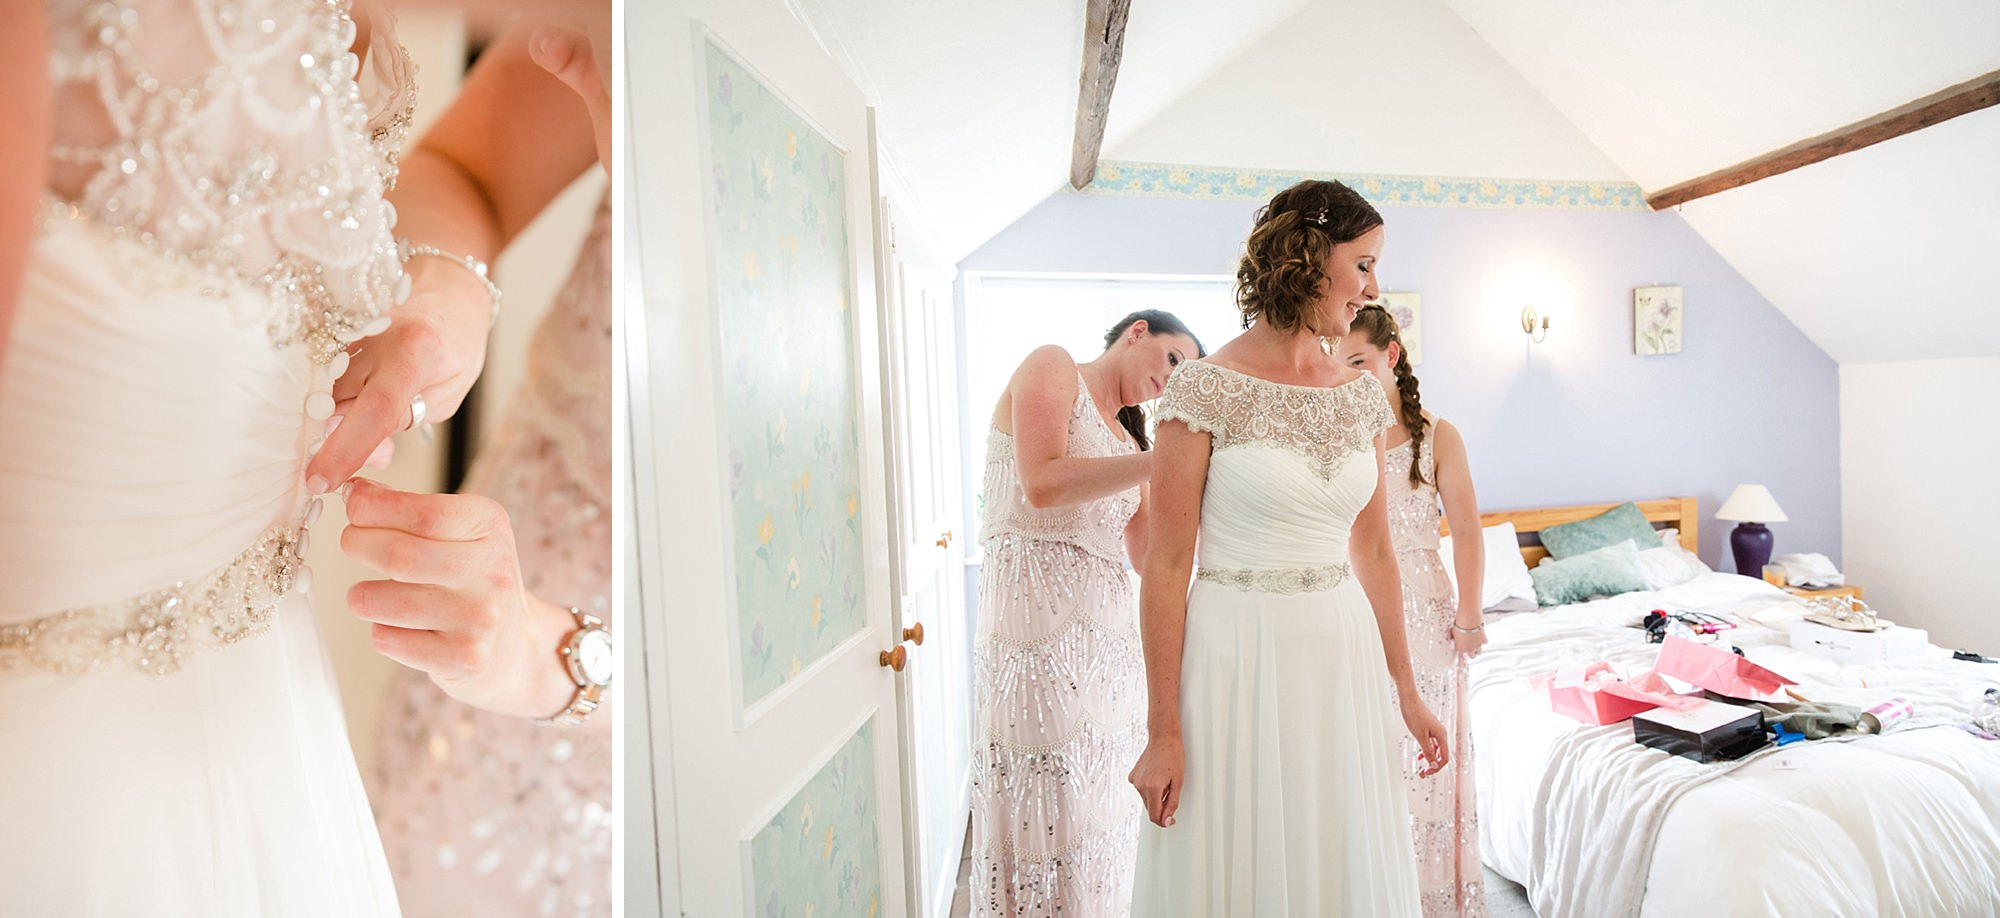 outdoor humanist wedding photography bride getting dressed